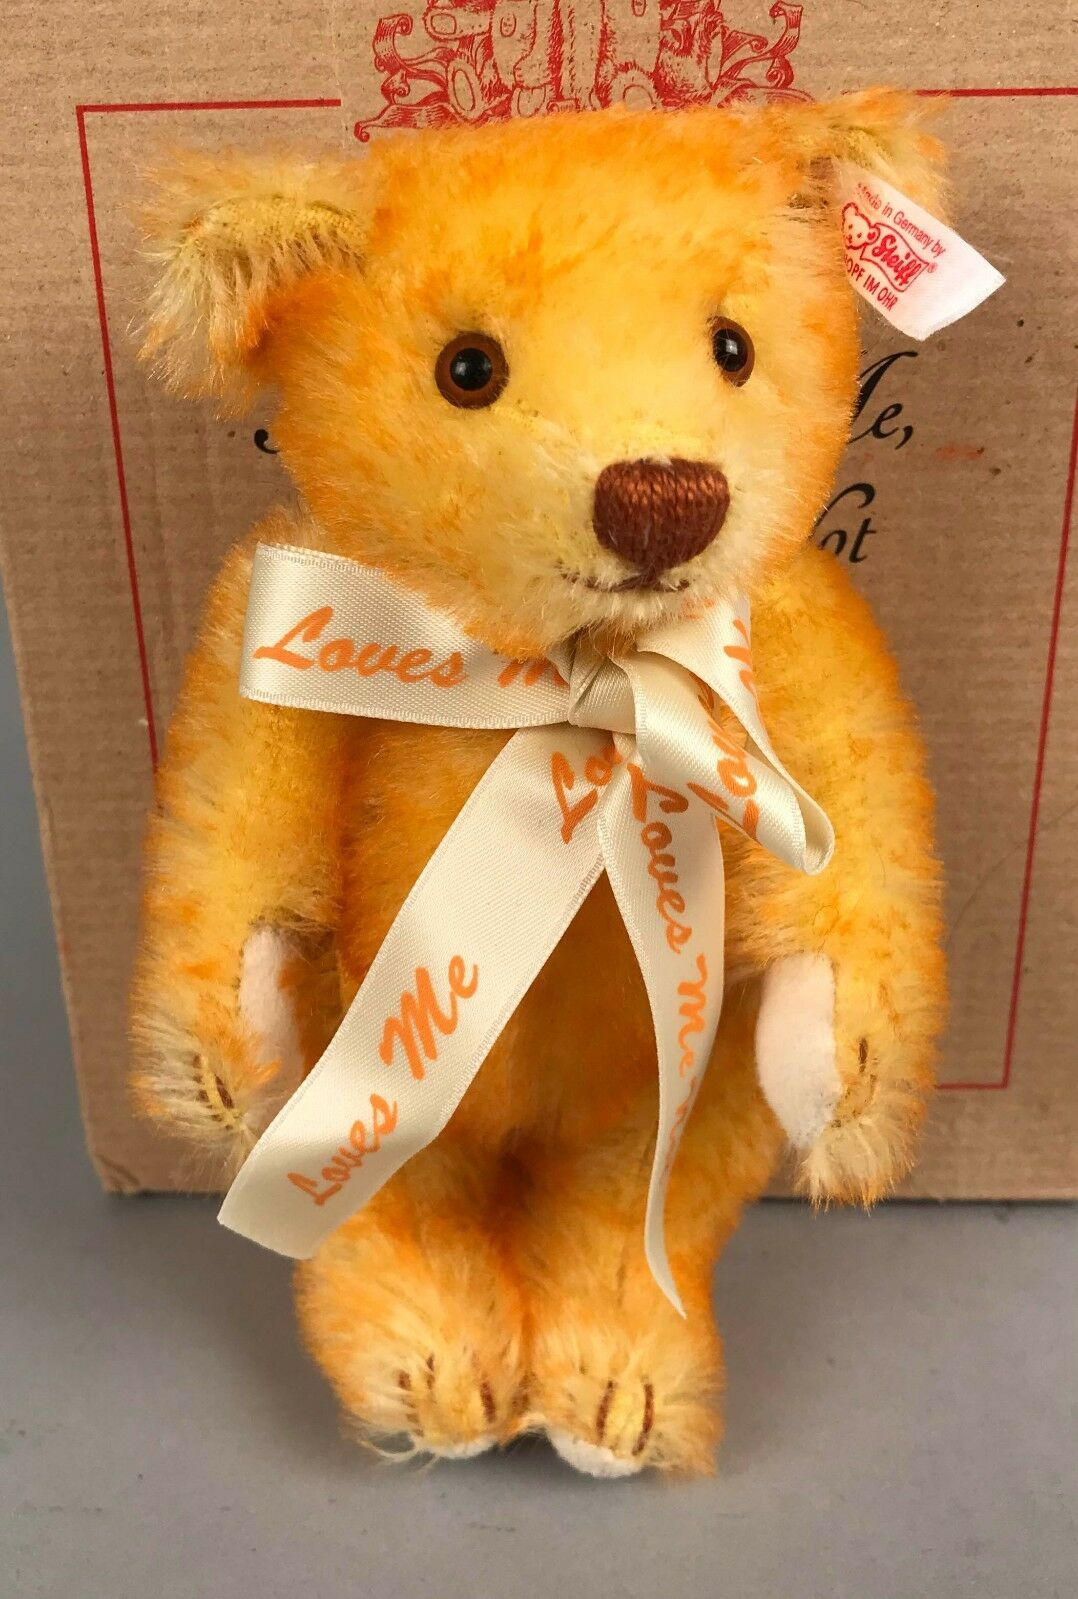 Vintage Steiff Teddy Bear - Mini Loves Me Not 666780 2002 6  LE 304/2002 COA NIB